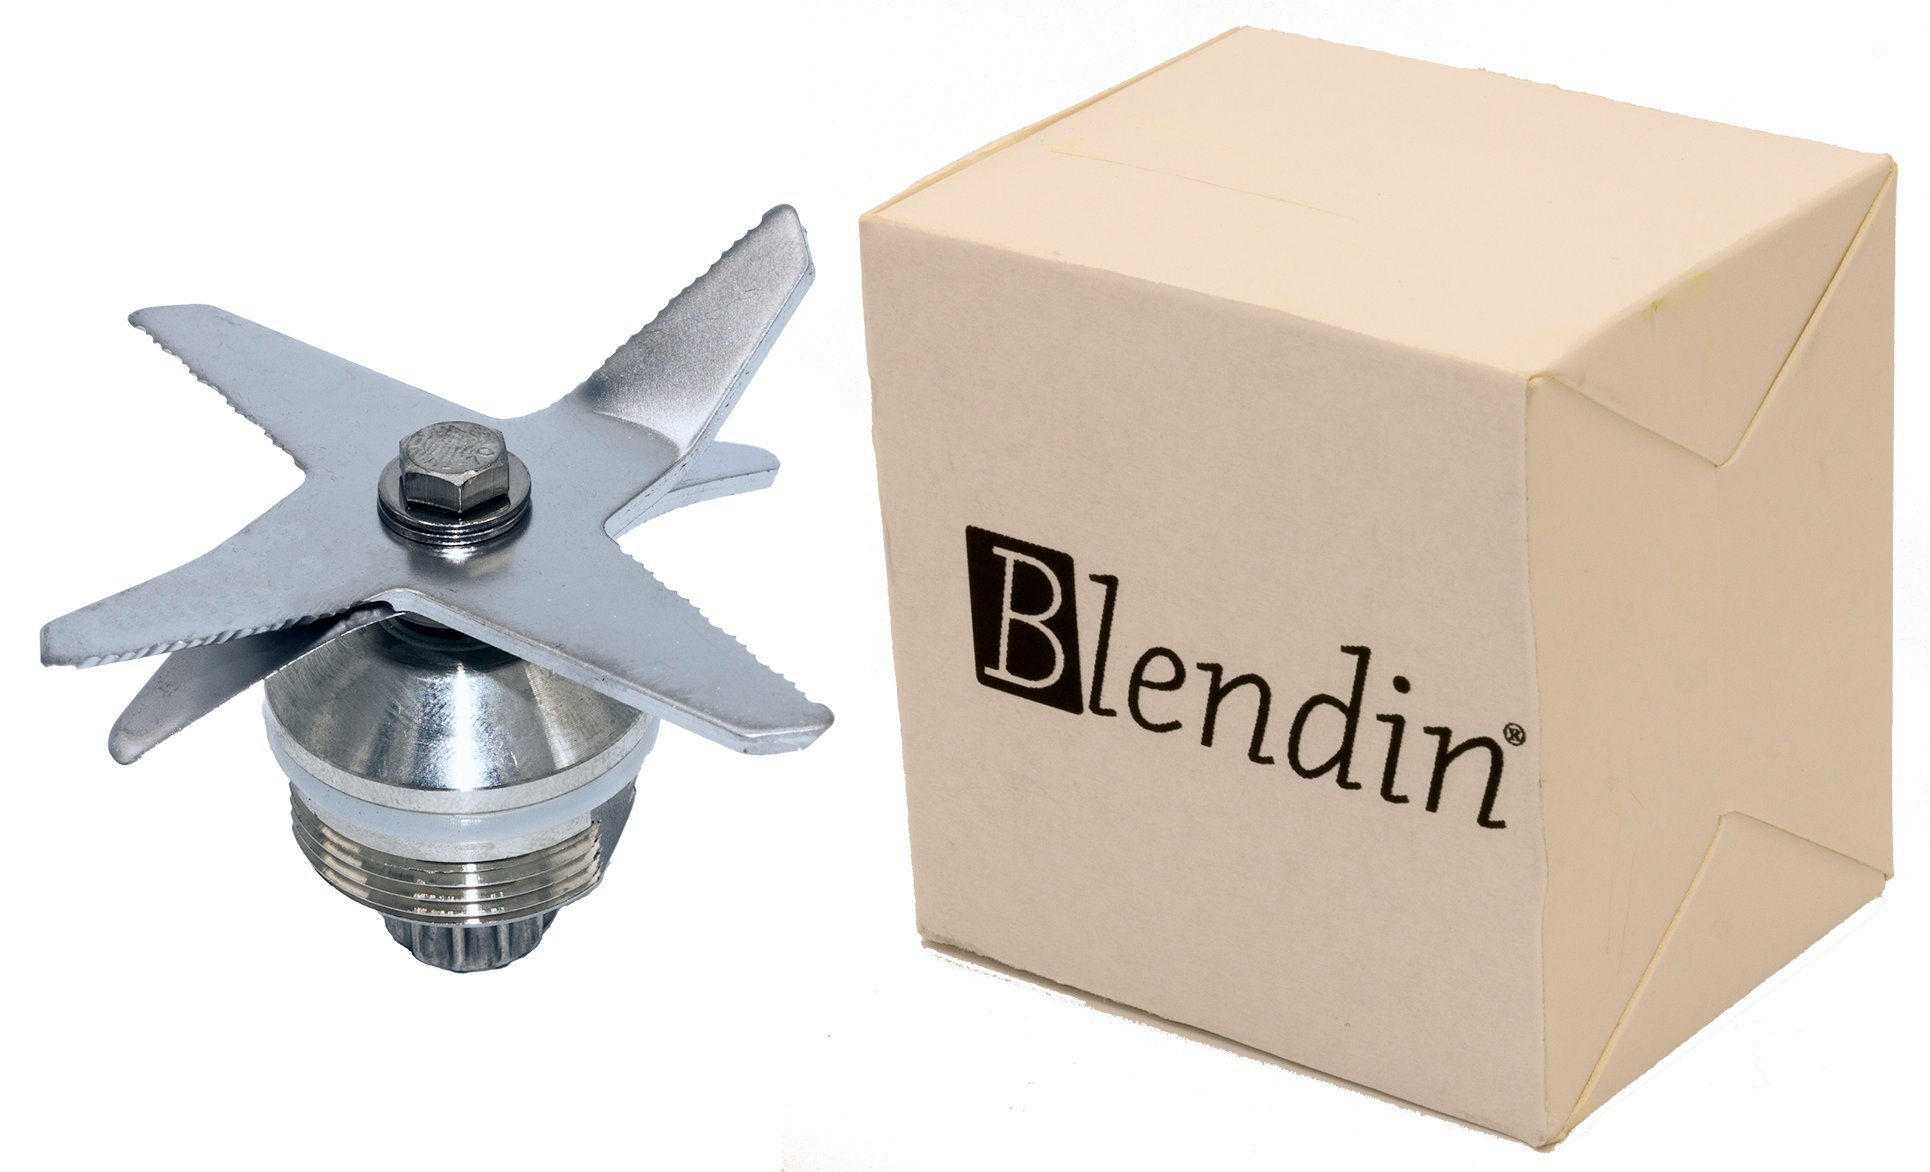 Blendin Stainless Steel Heavy Duty Wet Dry Ice 6 Blades Assembly,Compatible with Vitamix Part 1151, 1152 by BLENDIN (Image #3)